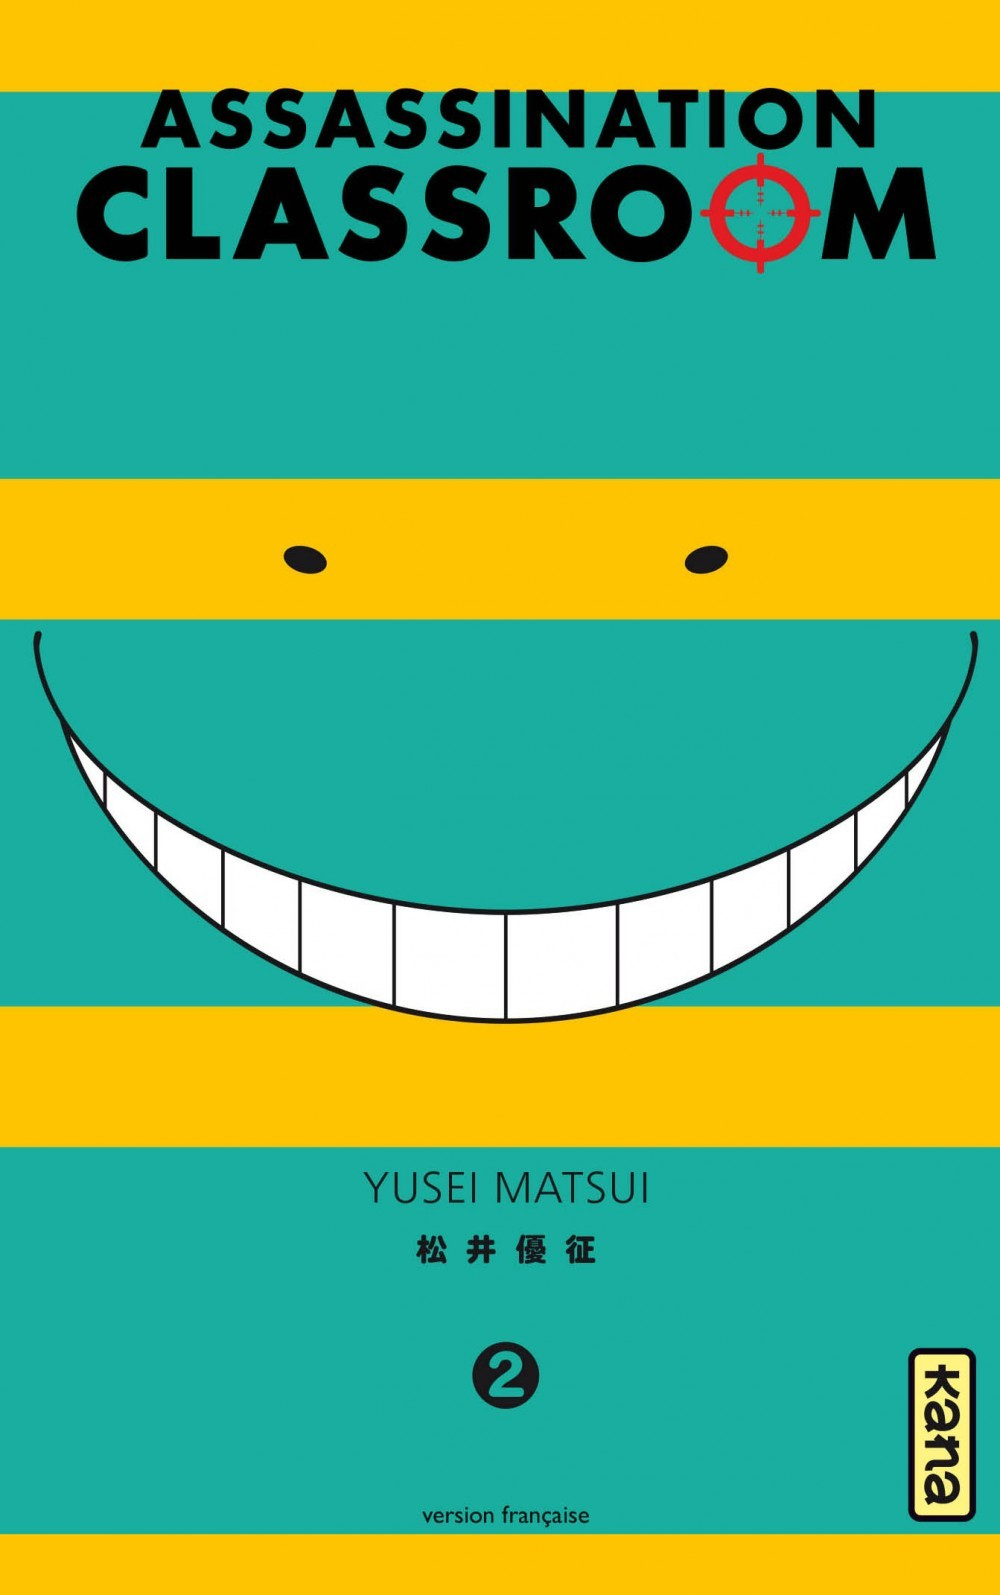 http://img.manga-sanctuary.com/big/assassination-classroom-manga-volume-2-simple-74032.jpg